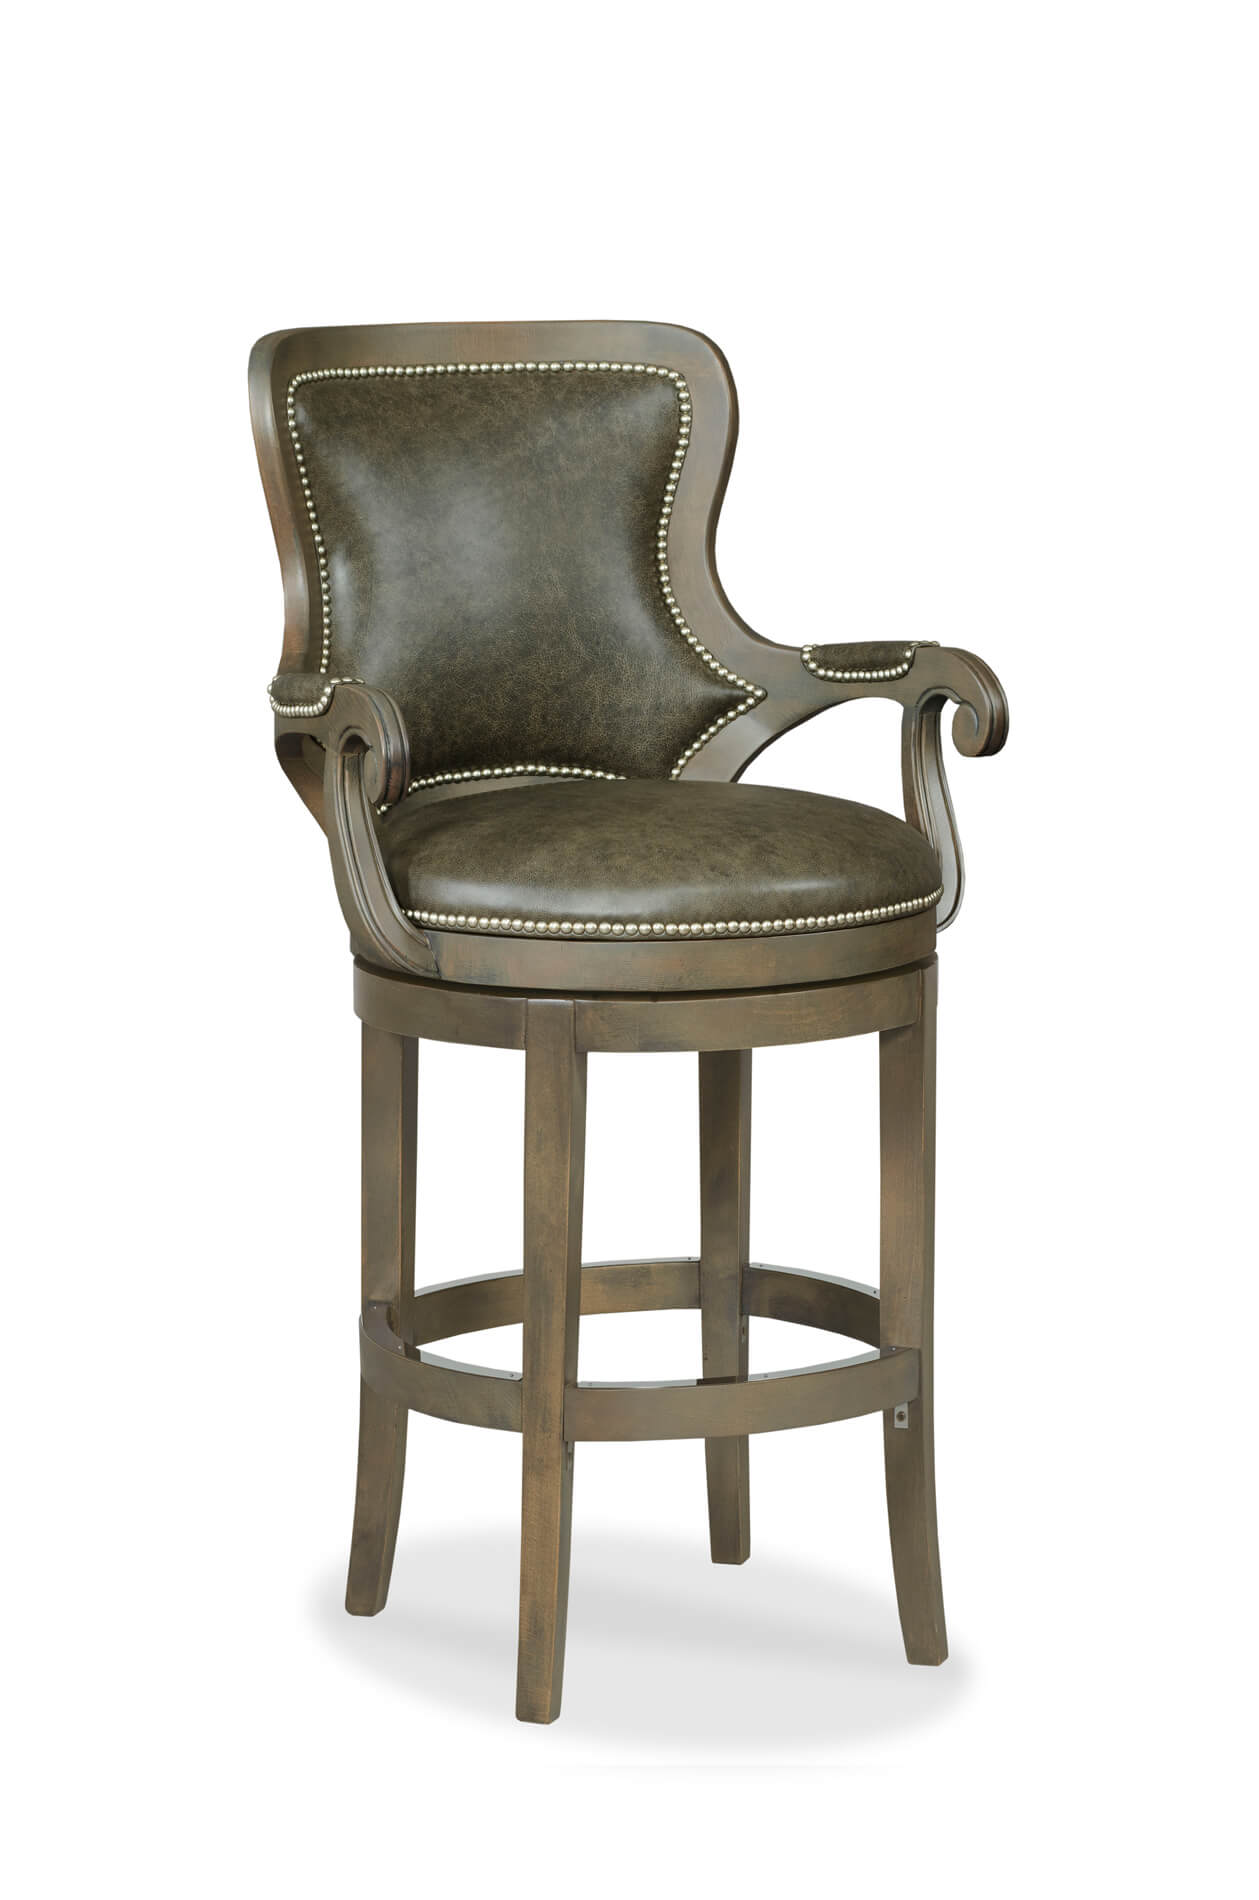 Fabulous Spritzer Wooden Upholstered Swivel Stool With Arms Alphanode Cool Chair Designs And Ideas Alphanodeonline